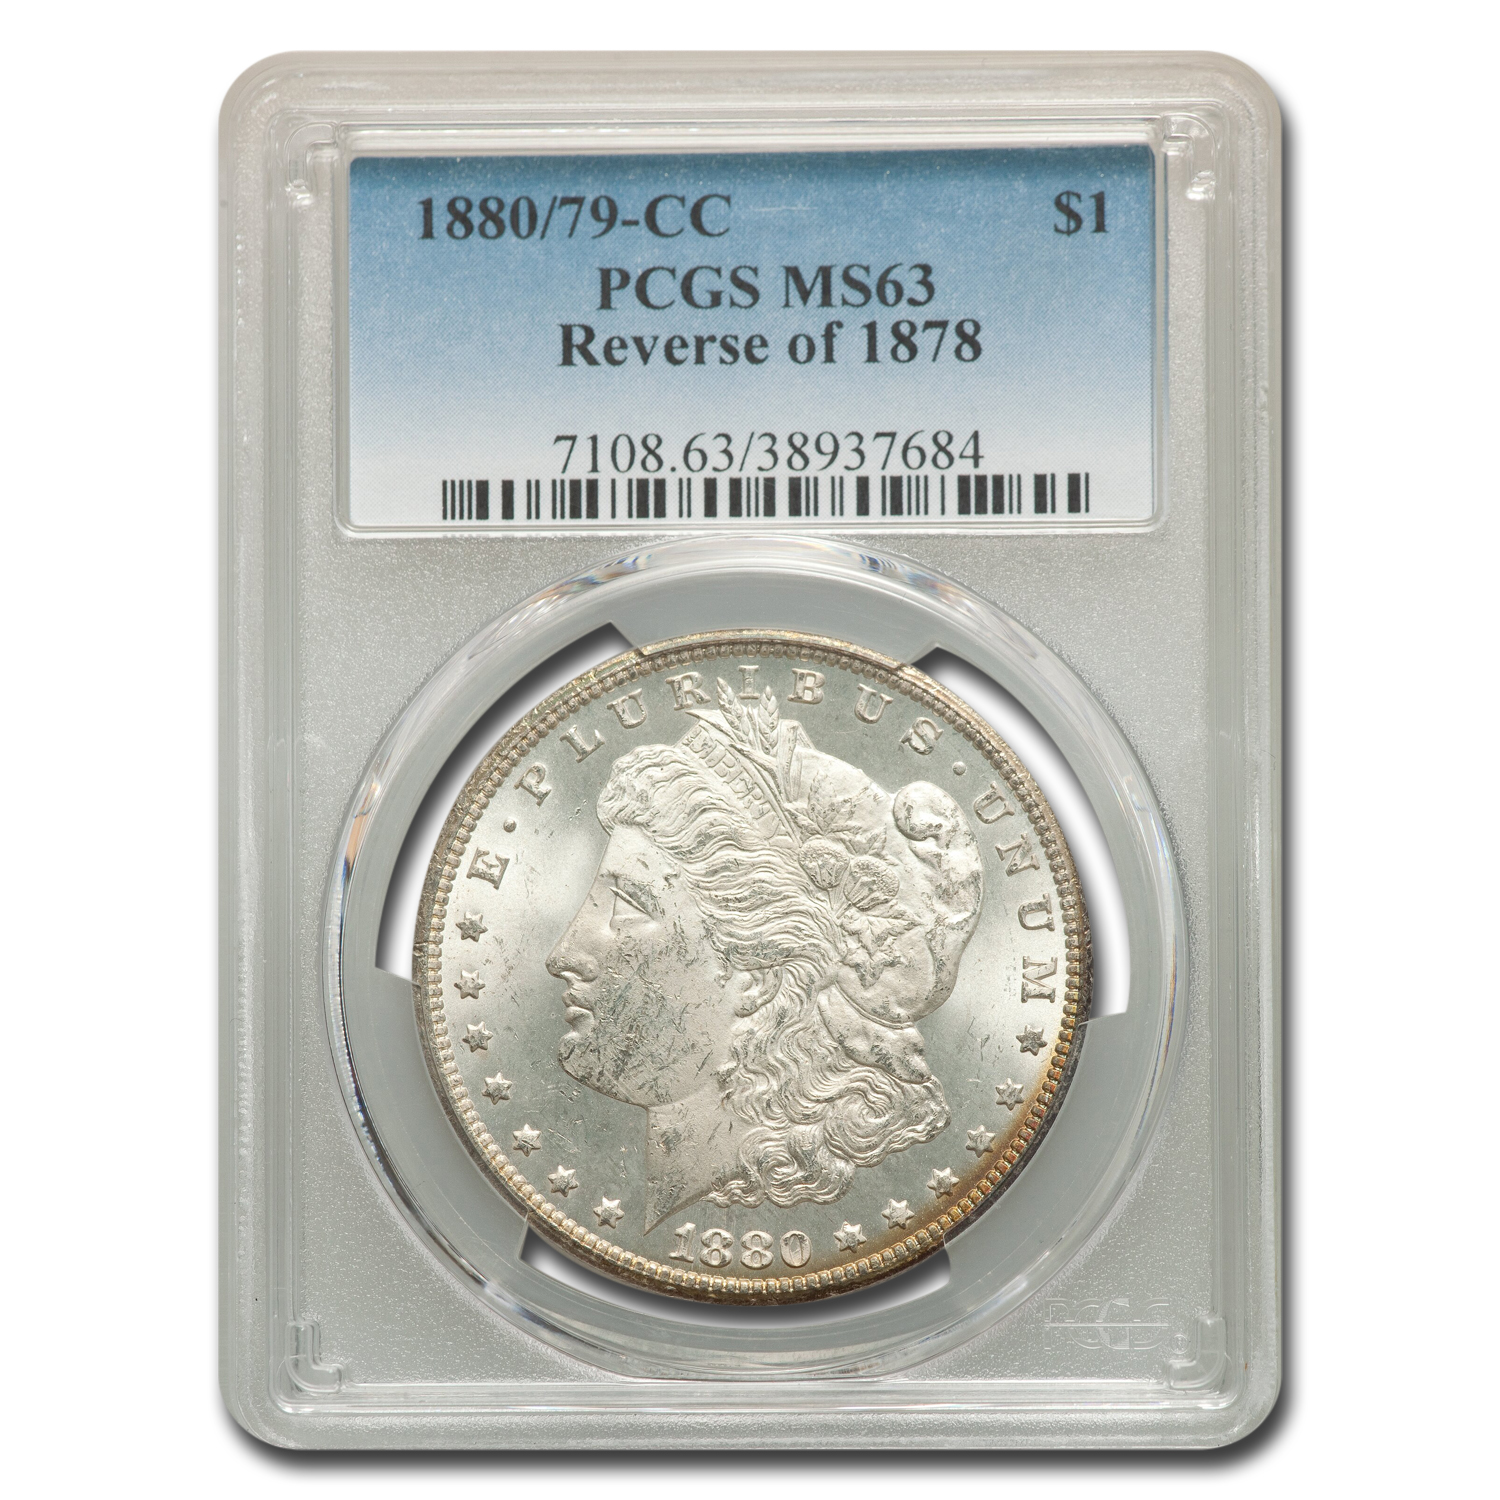 1880/79-CC Morgan Dollar - Reverse of 1878 - MS-63 PCGS